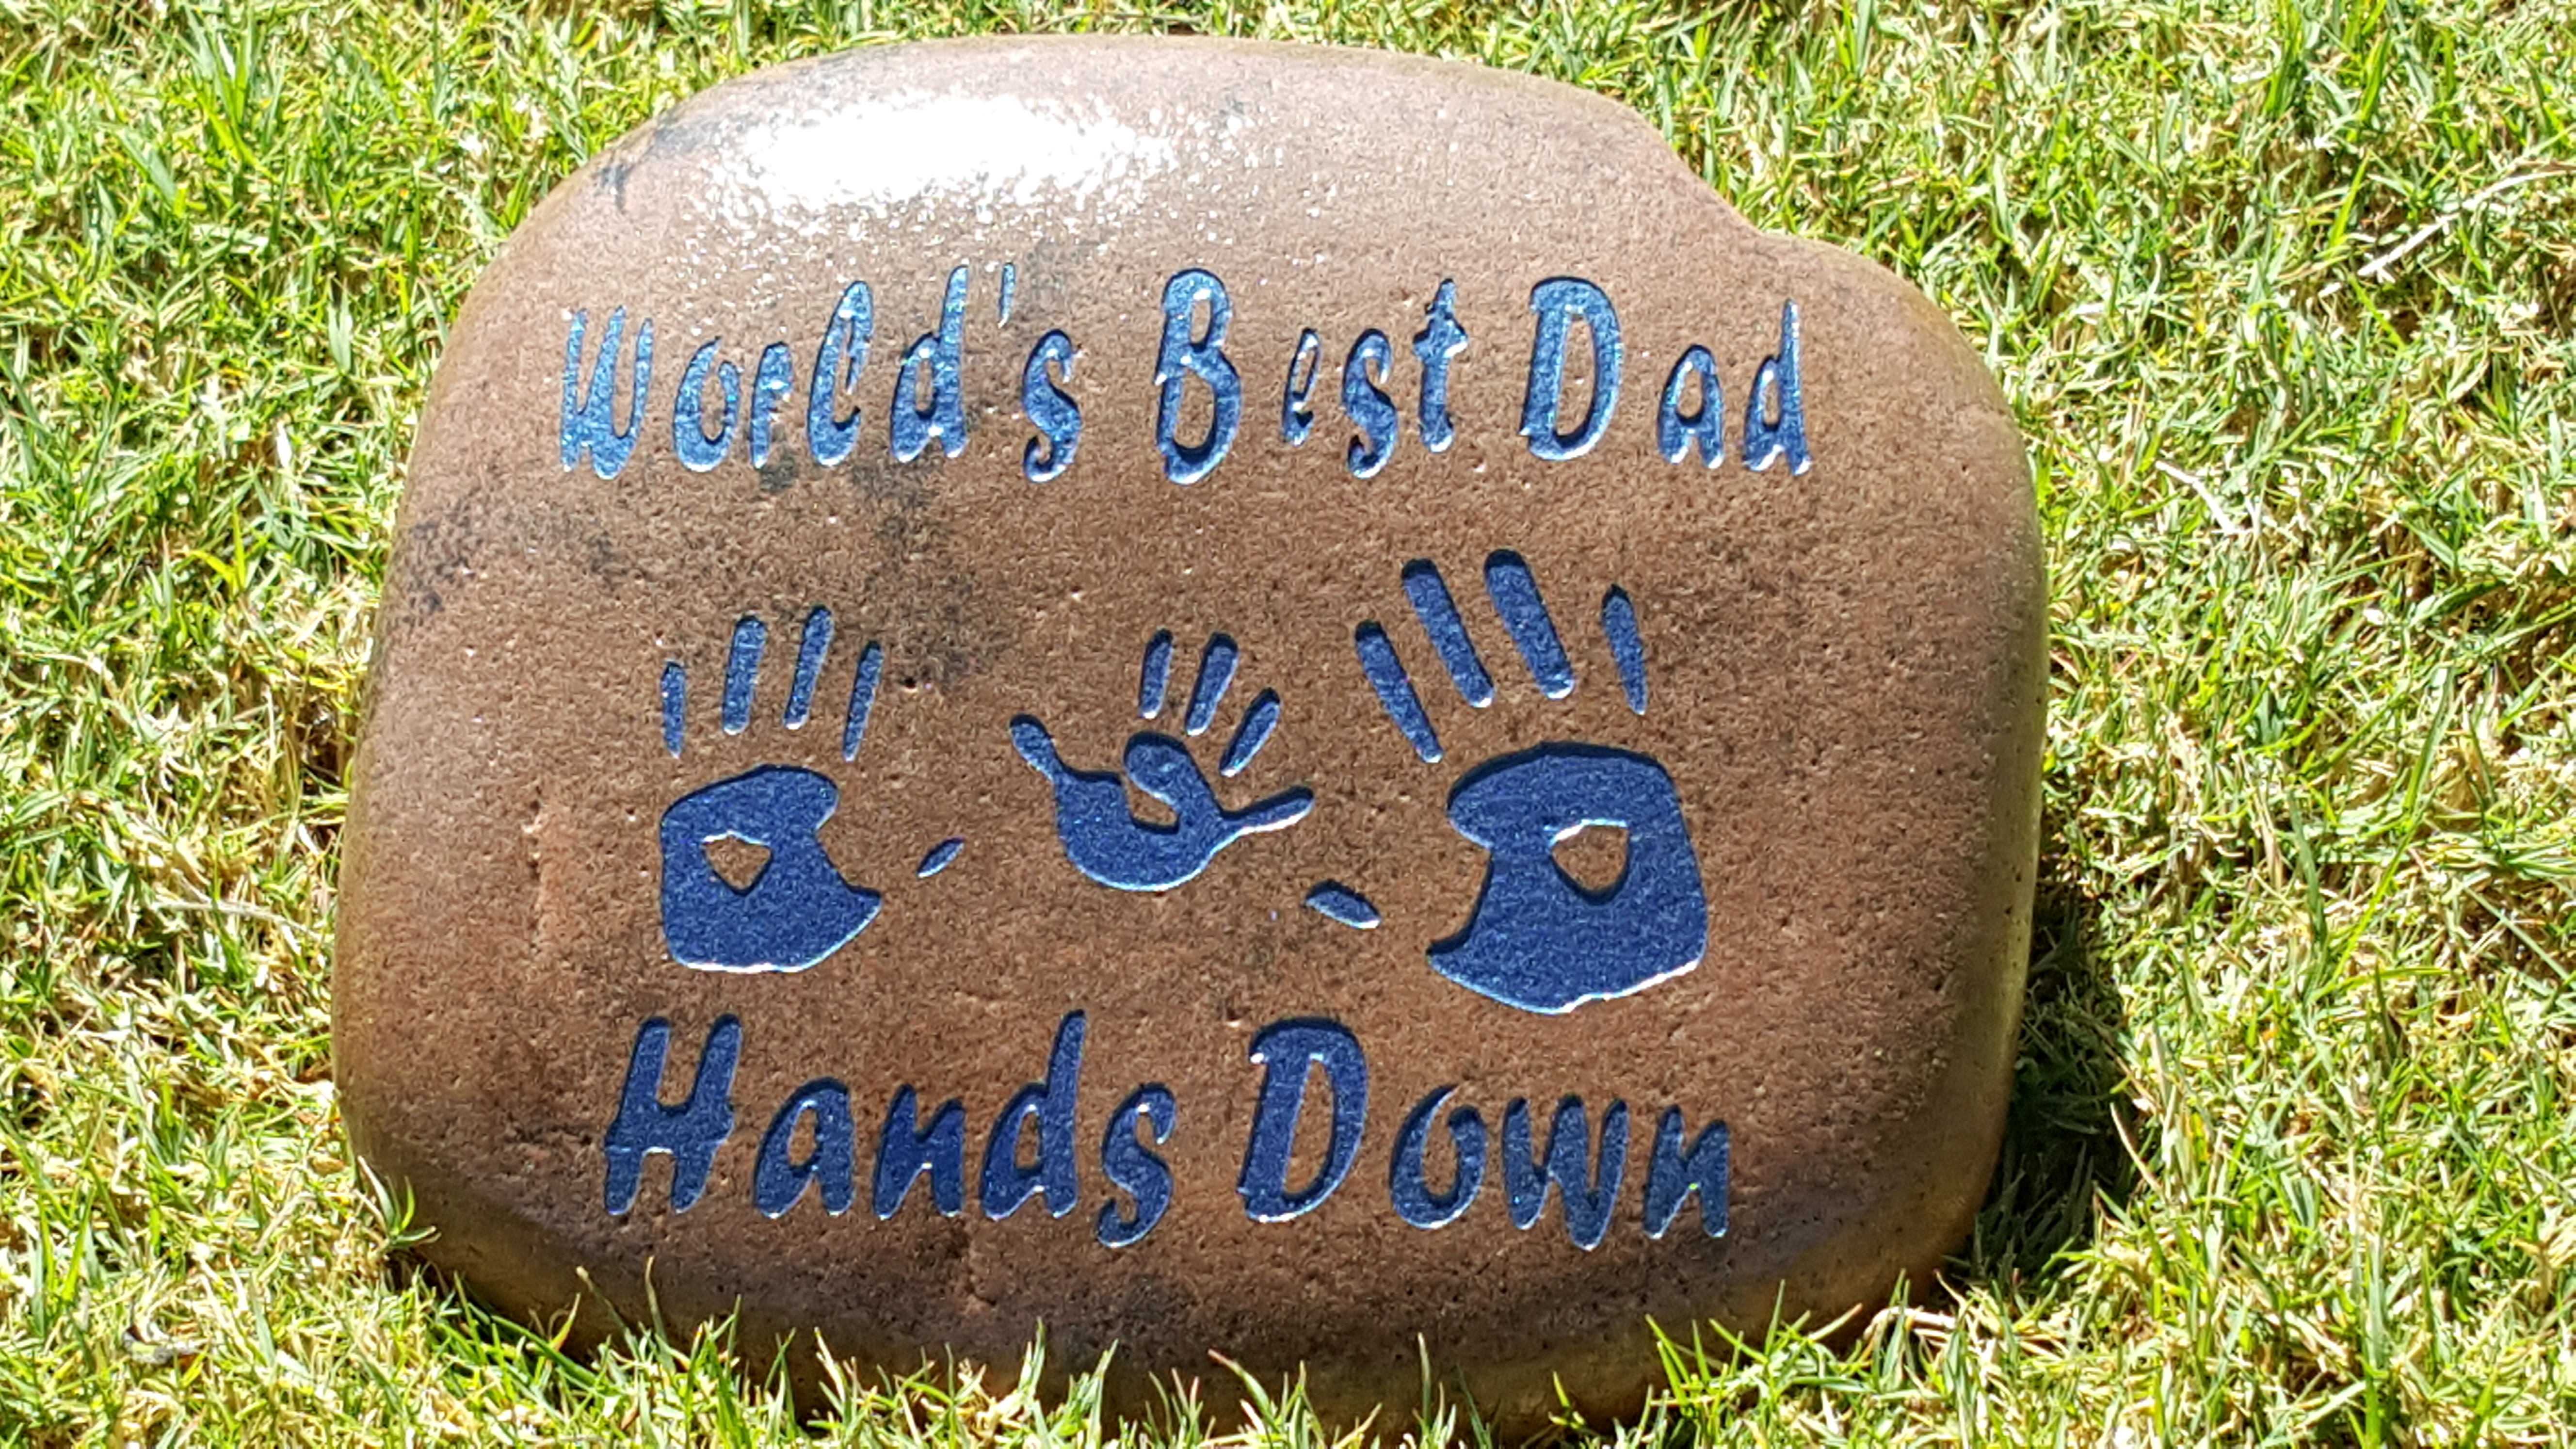 personalized engraved stones gifts and memorials